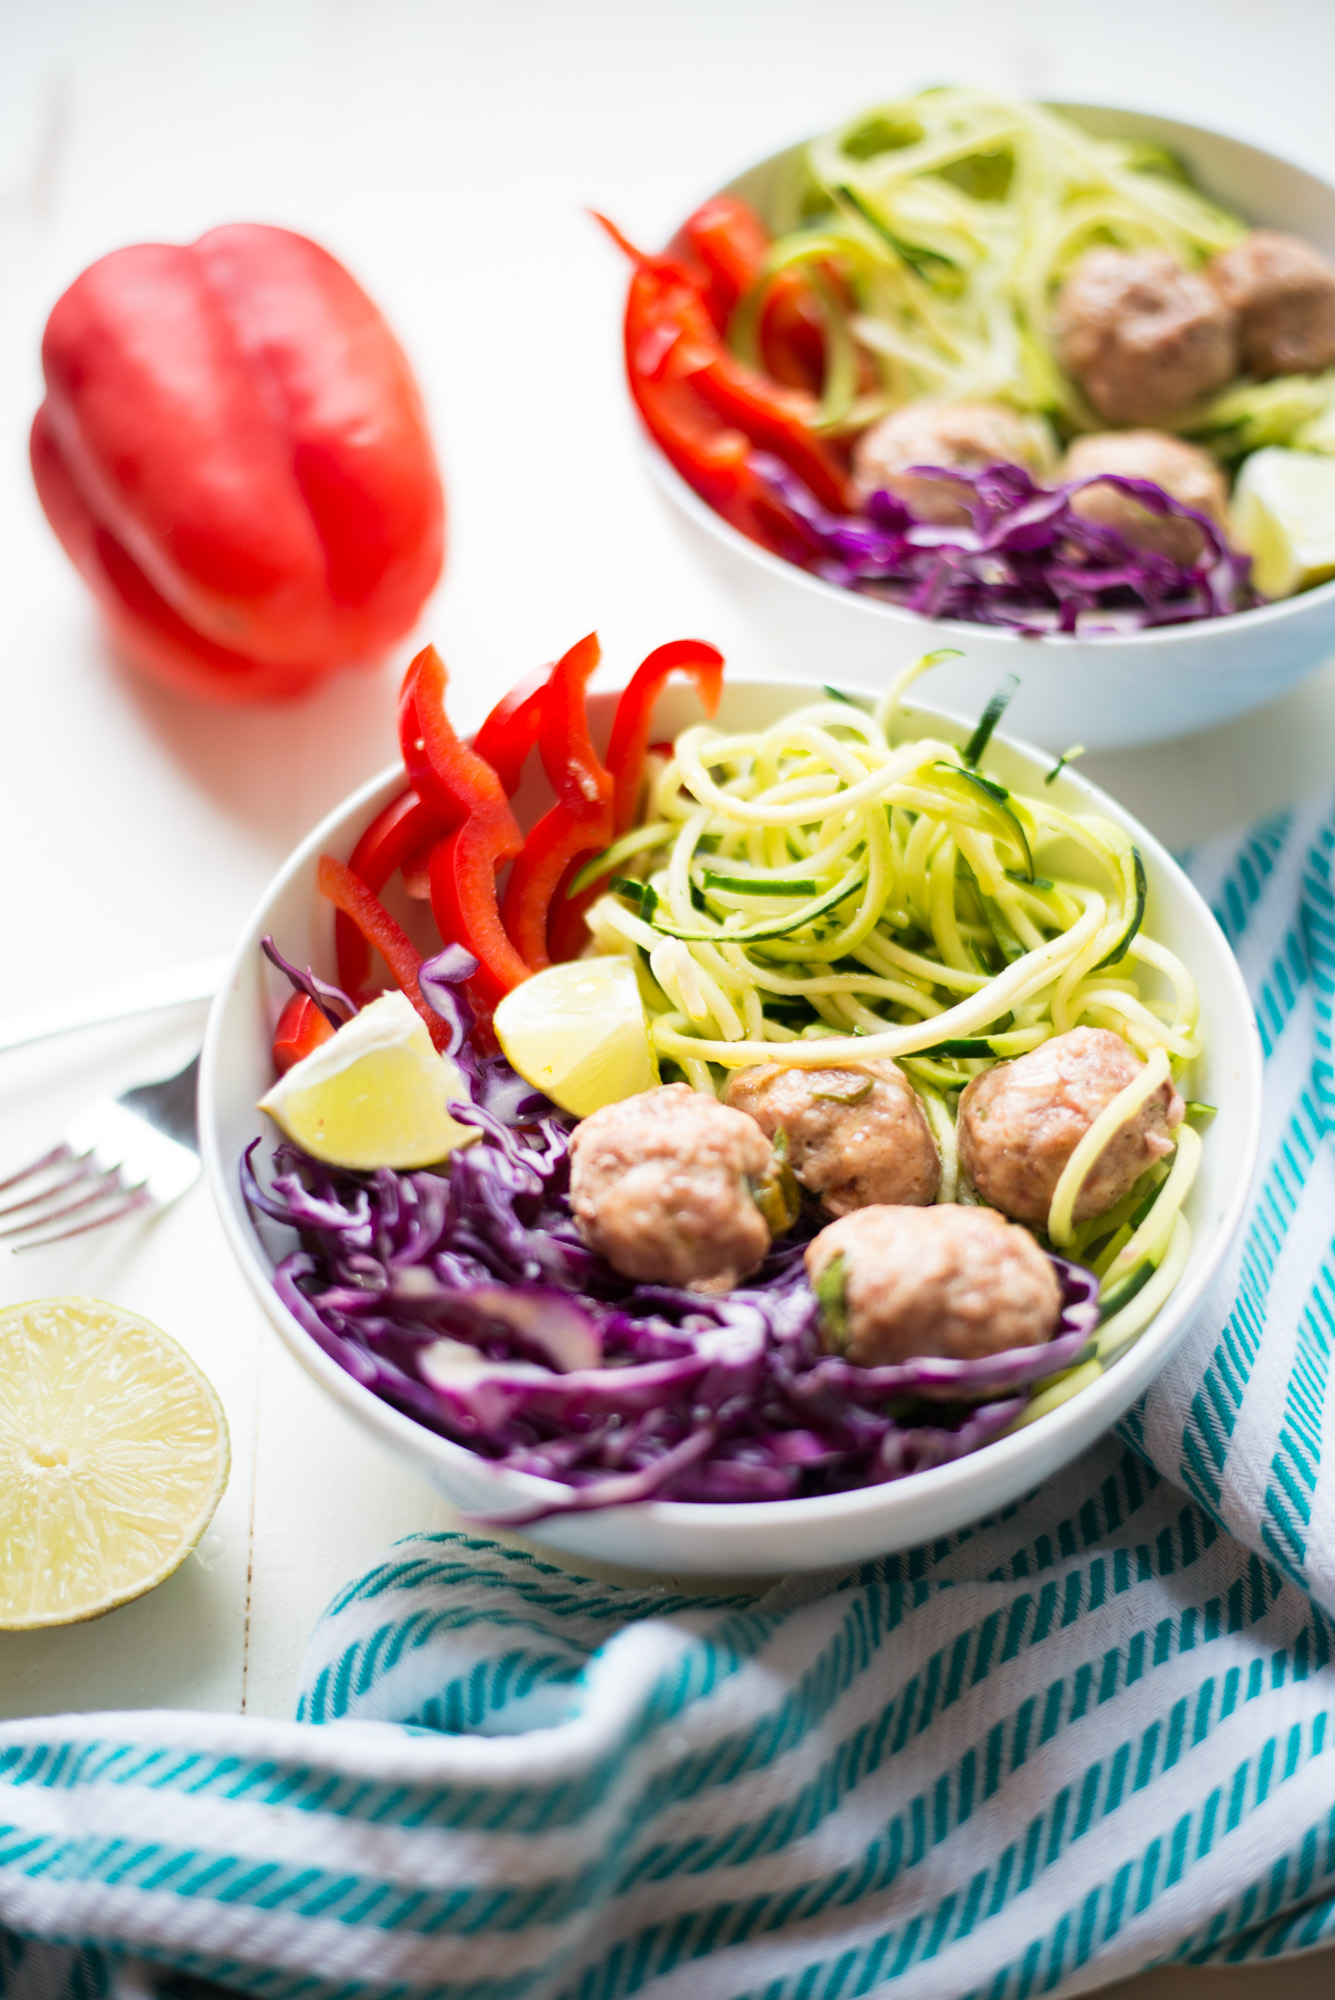 Light, bright, and full of vibrant flavors, Easy Southwest Zoodle Bowls with Turkey Meatballs is a simple weeknight recipe everyone will love.